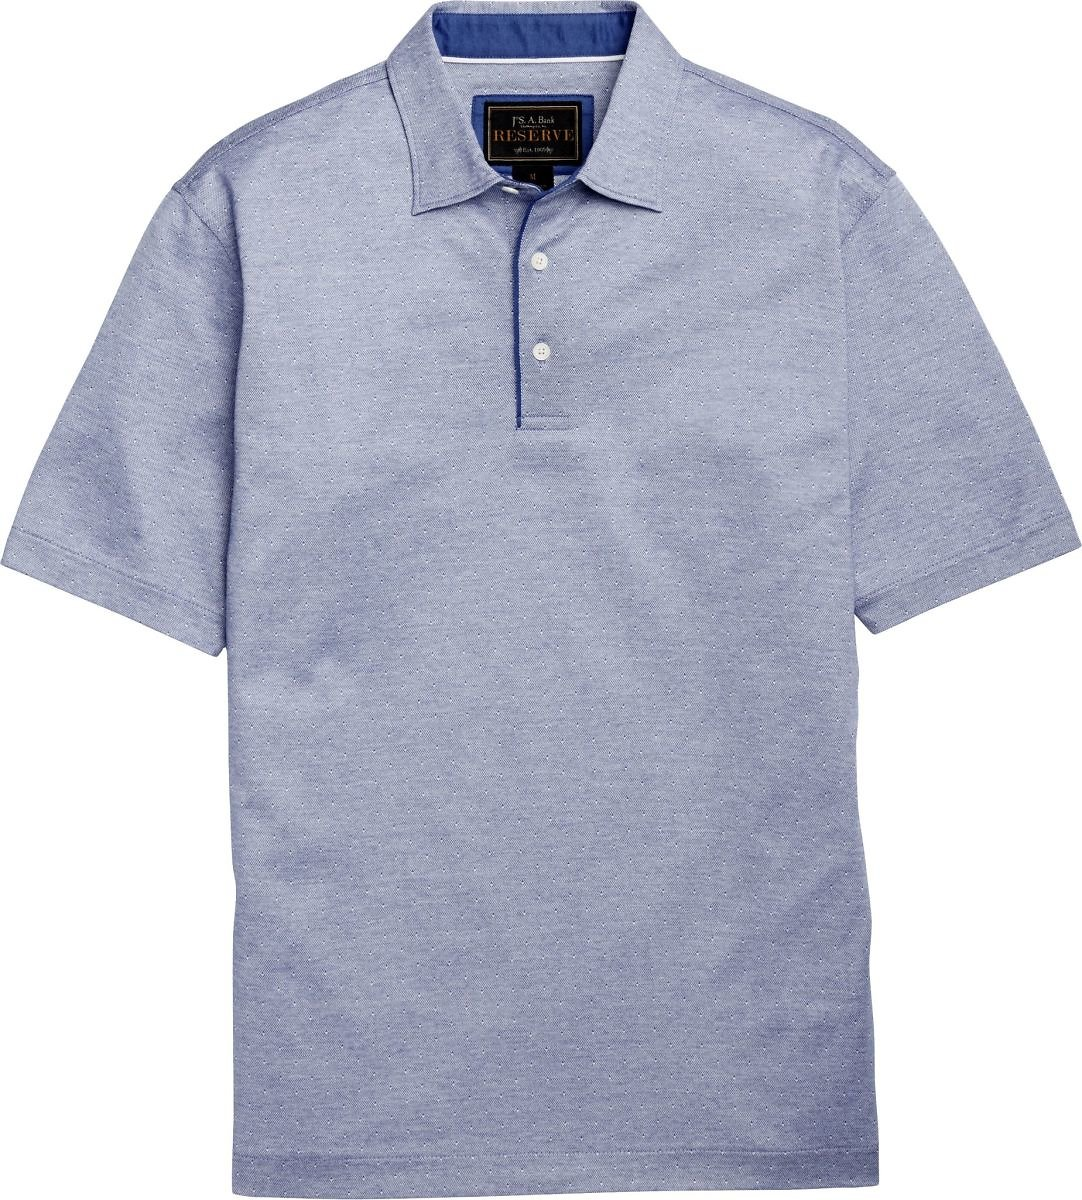 Reserve Collection Traditional Fit Dot Short-Sleeve Interlock Polo Shirt - Big & Tall CLEARANCE #62GU